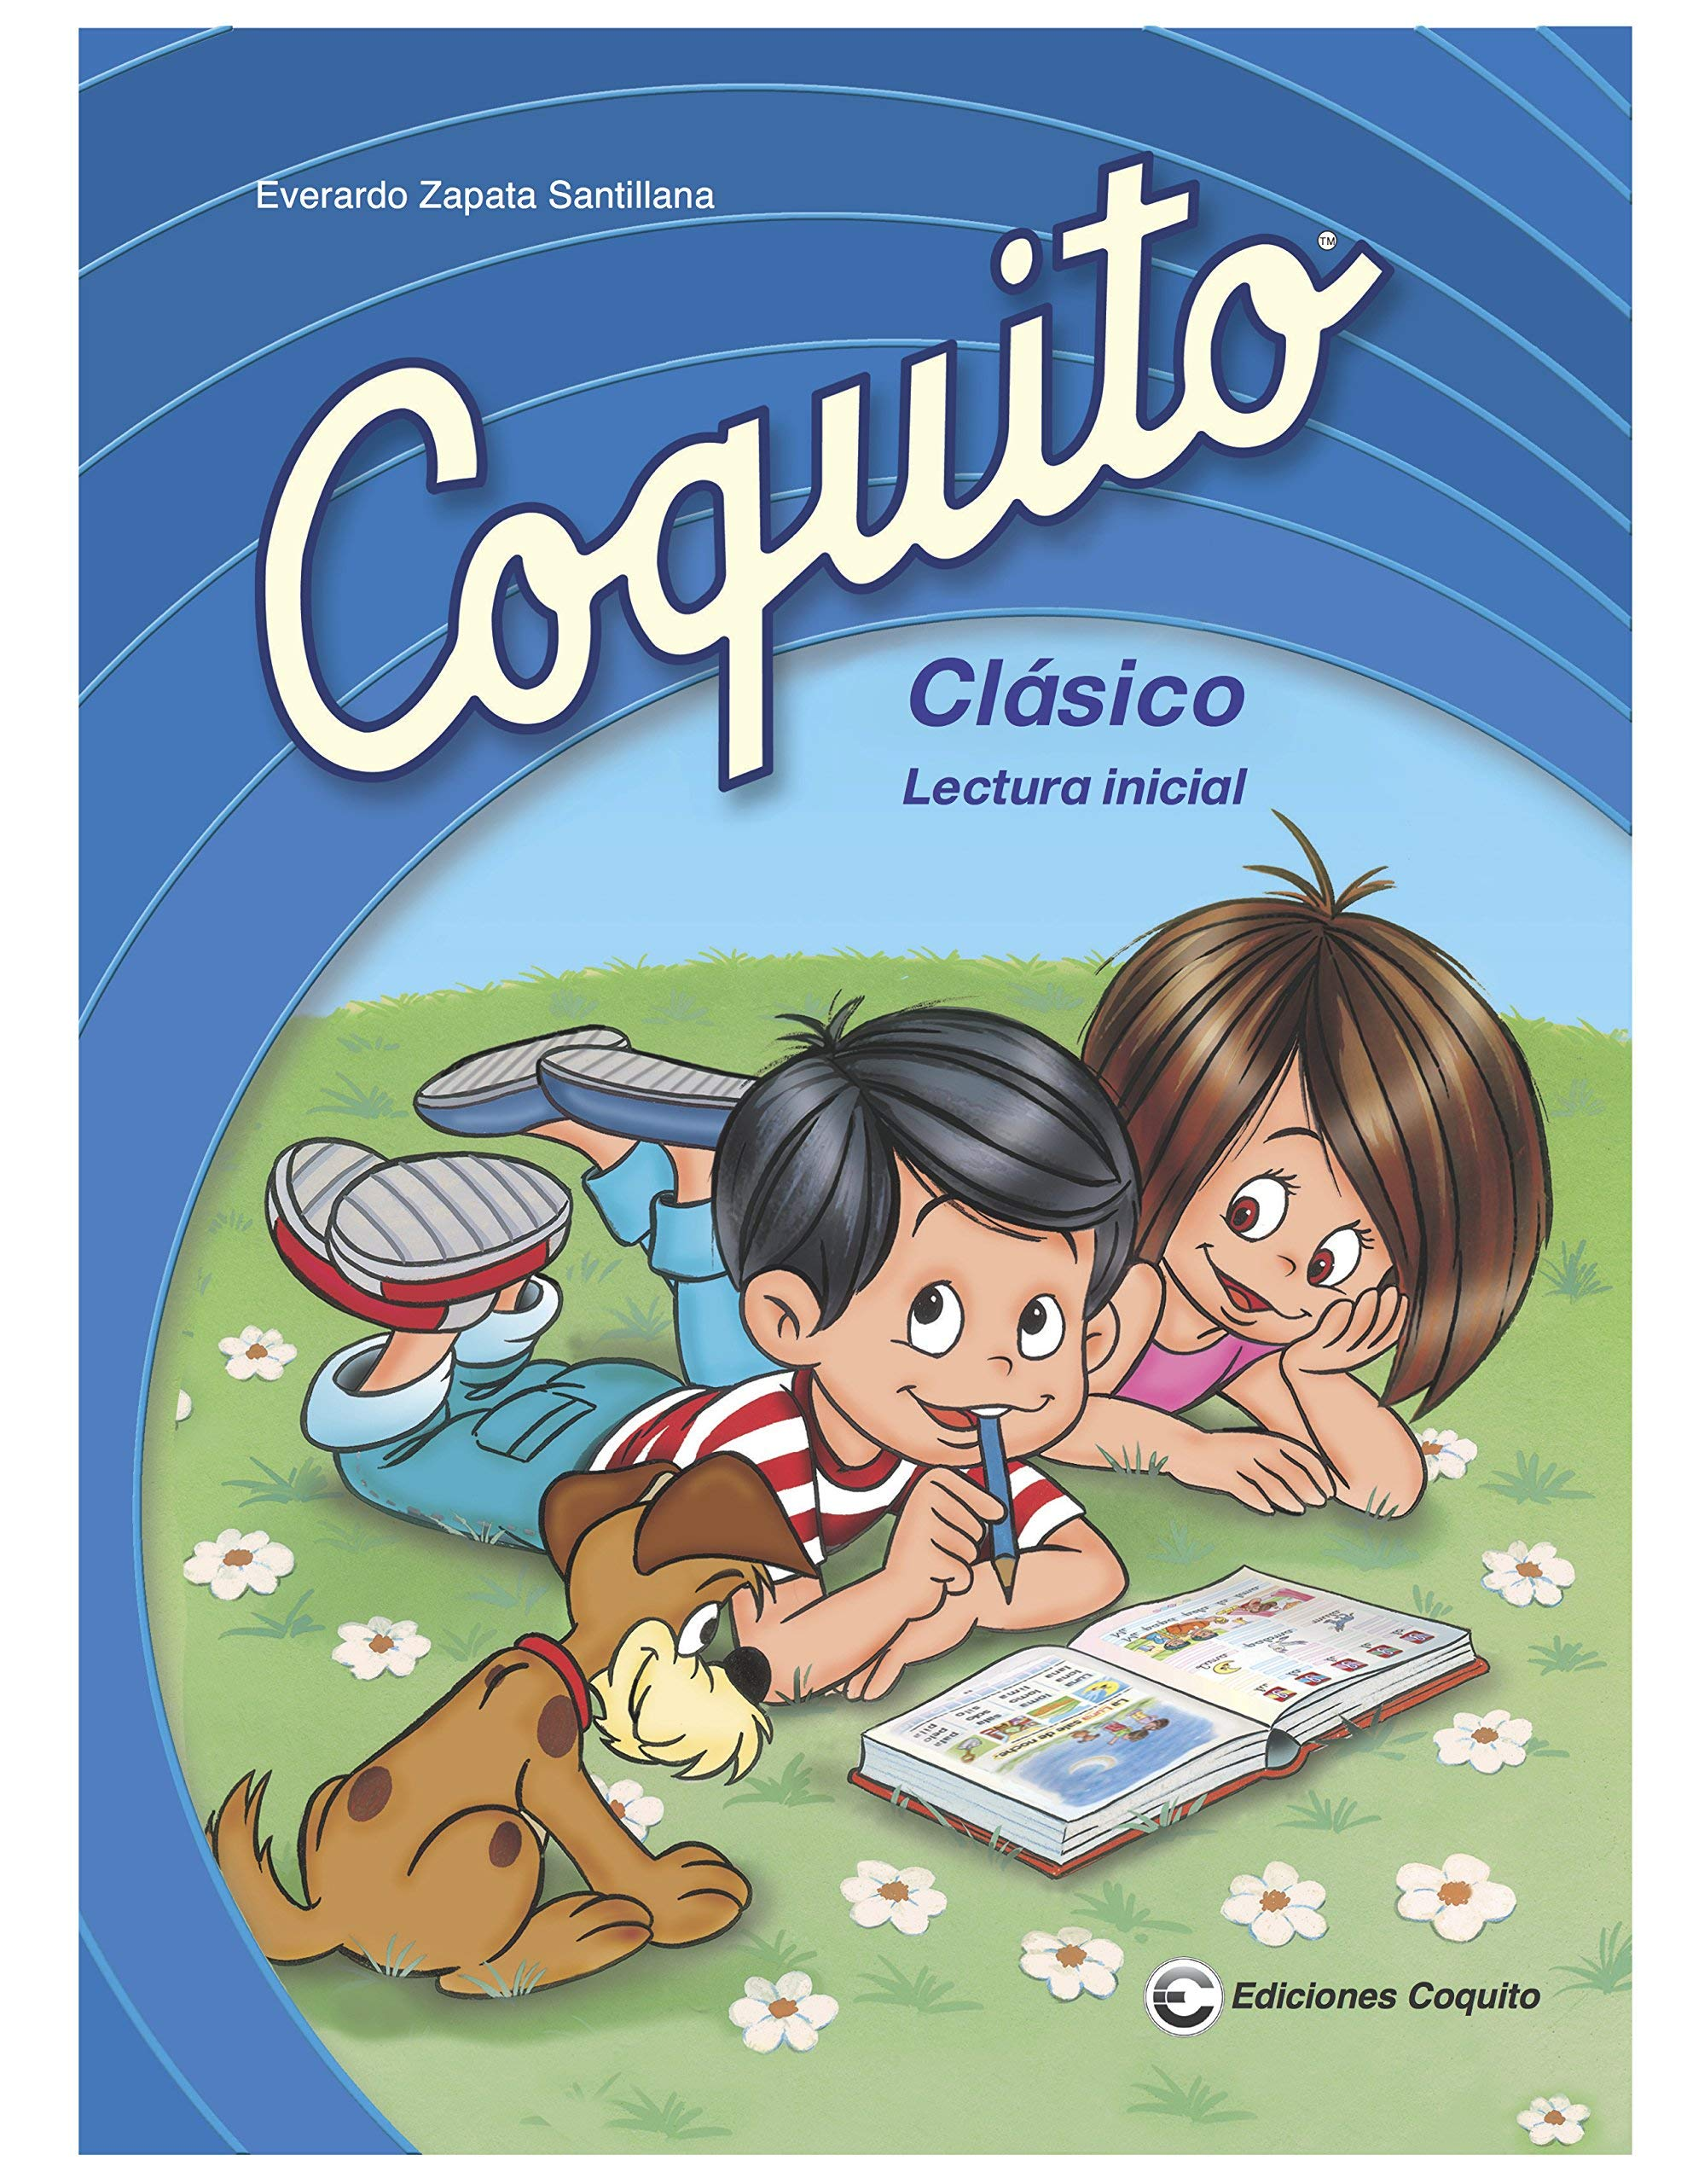 Coquito Classico (2015 Edition): Lectura Inicial (Spanish Edition) (Spanish) Paperback – January 1, 2016